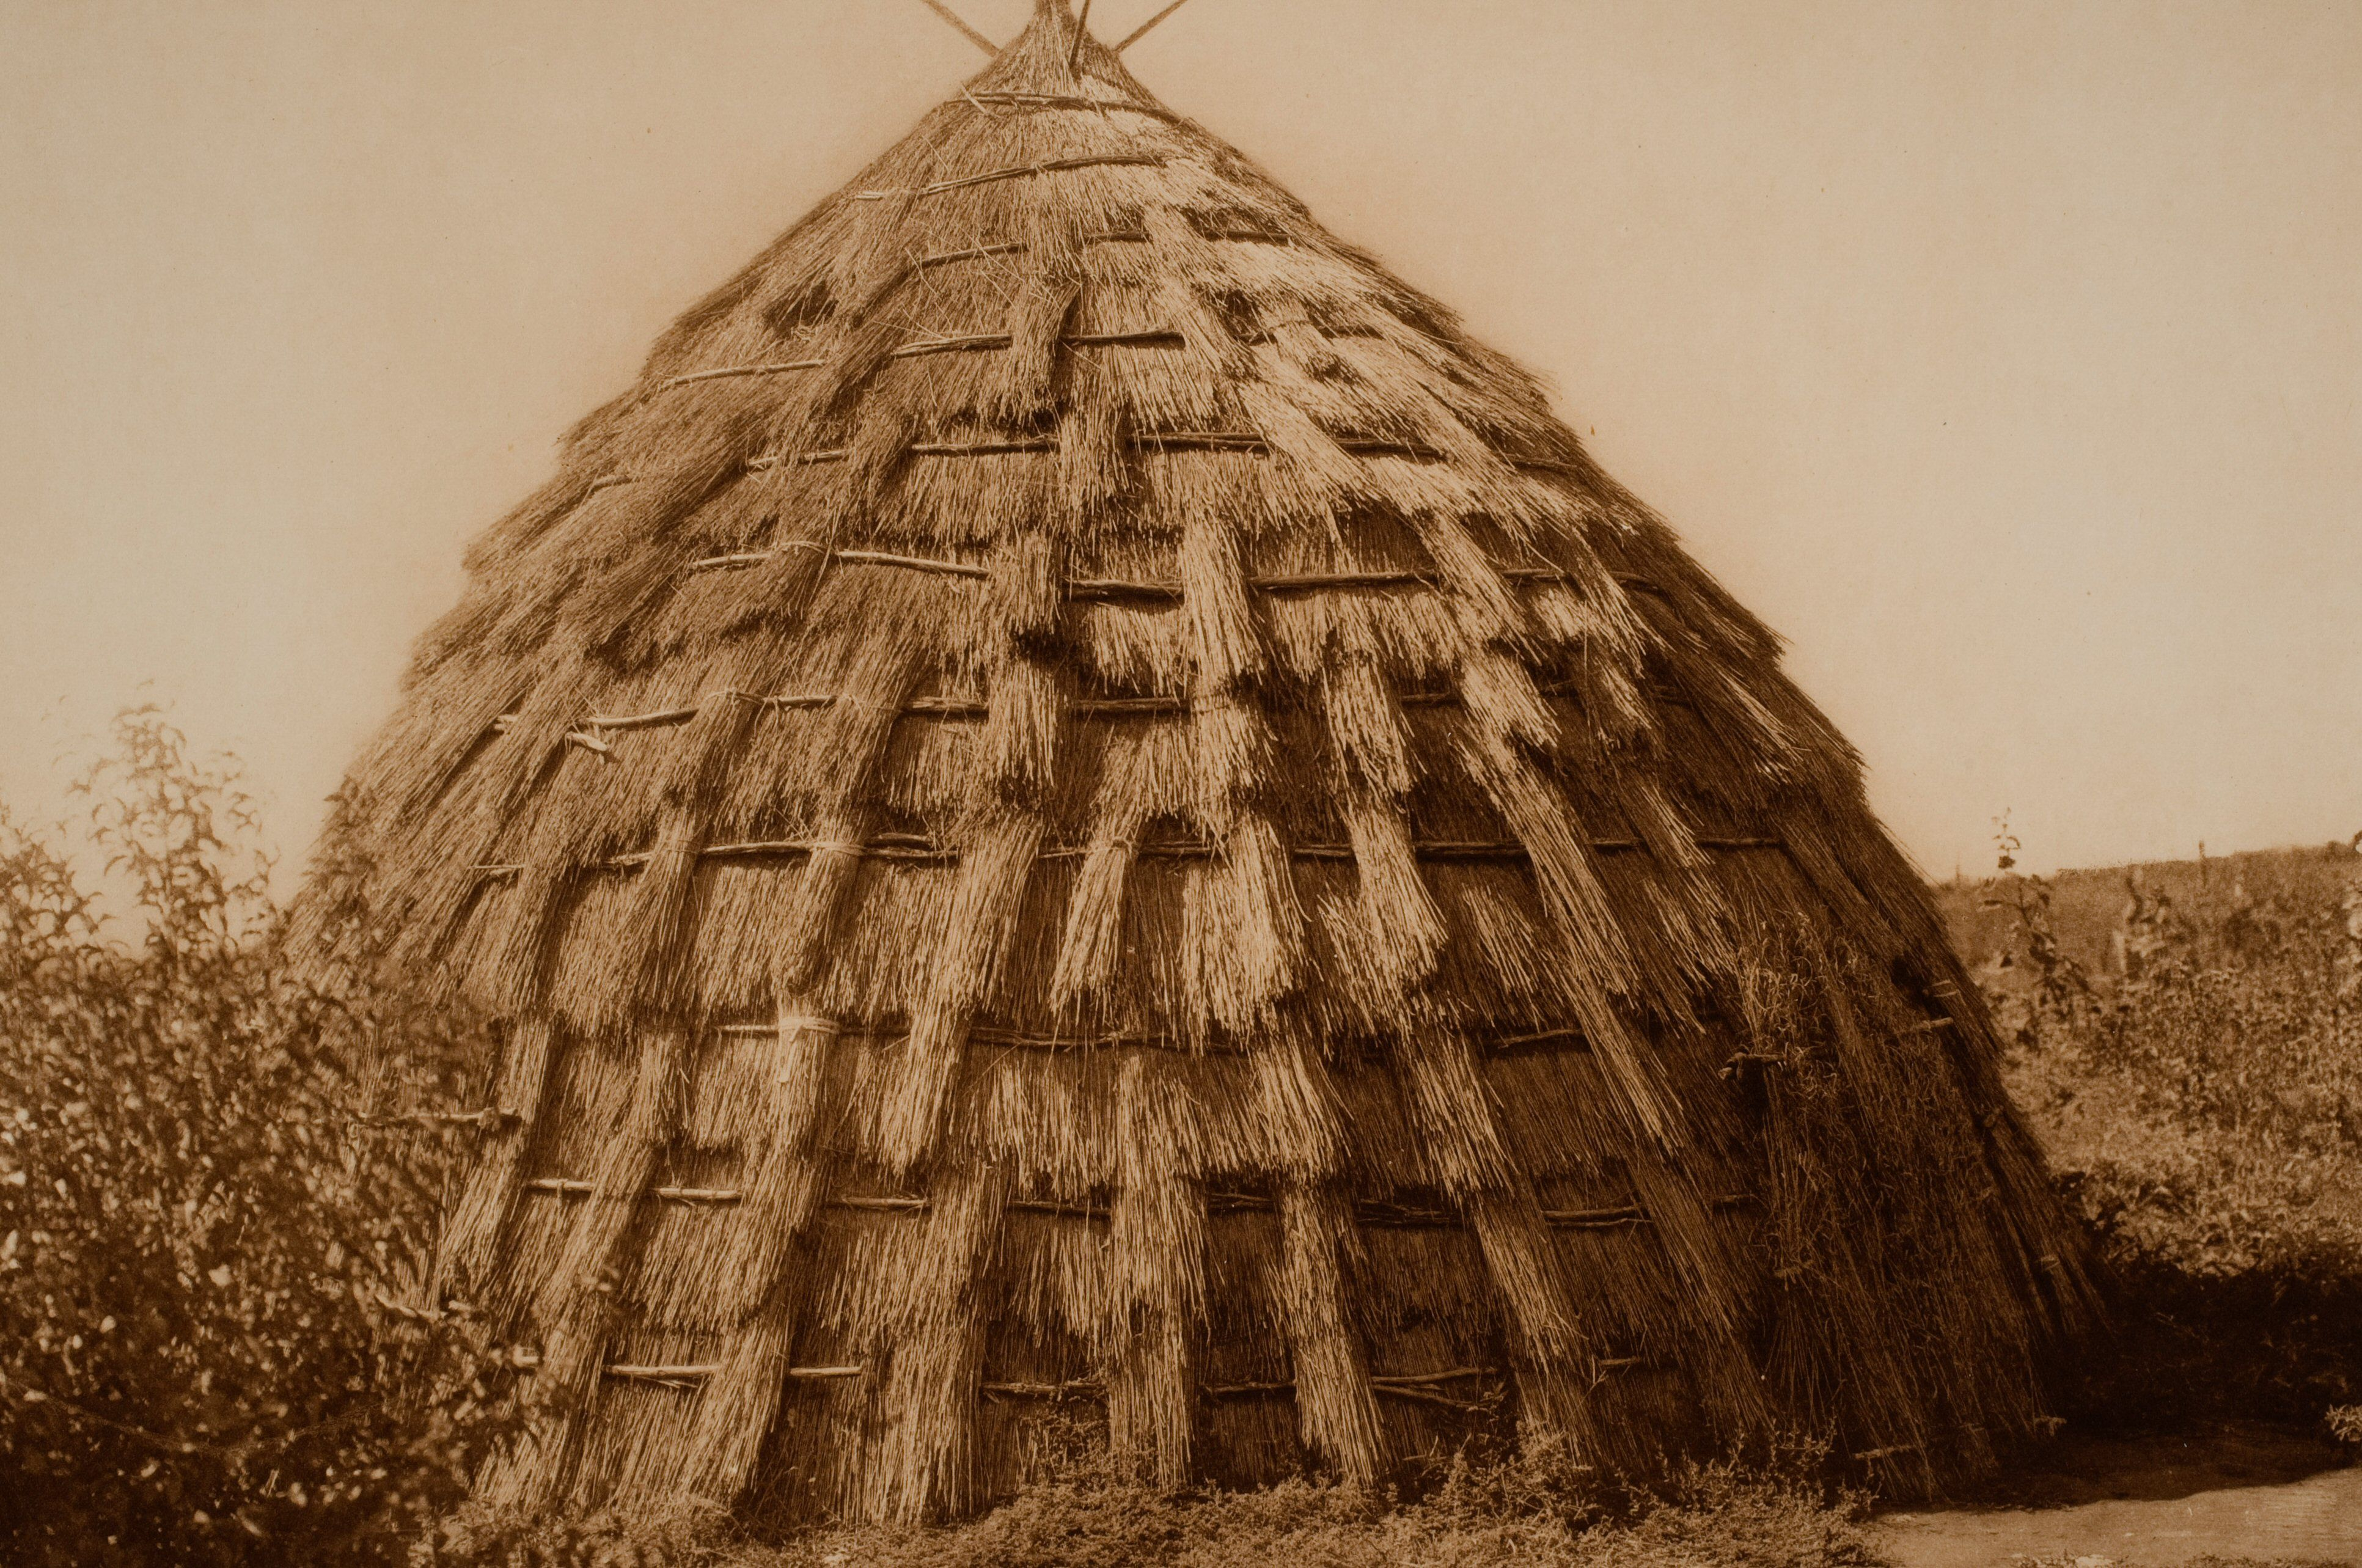 historic sepia photo of a domed hut made of grass